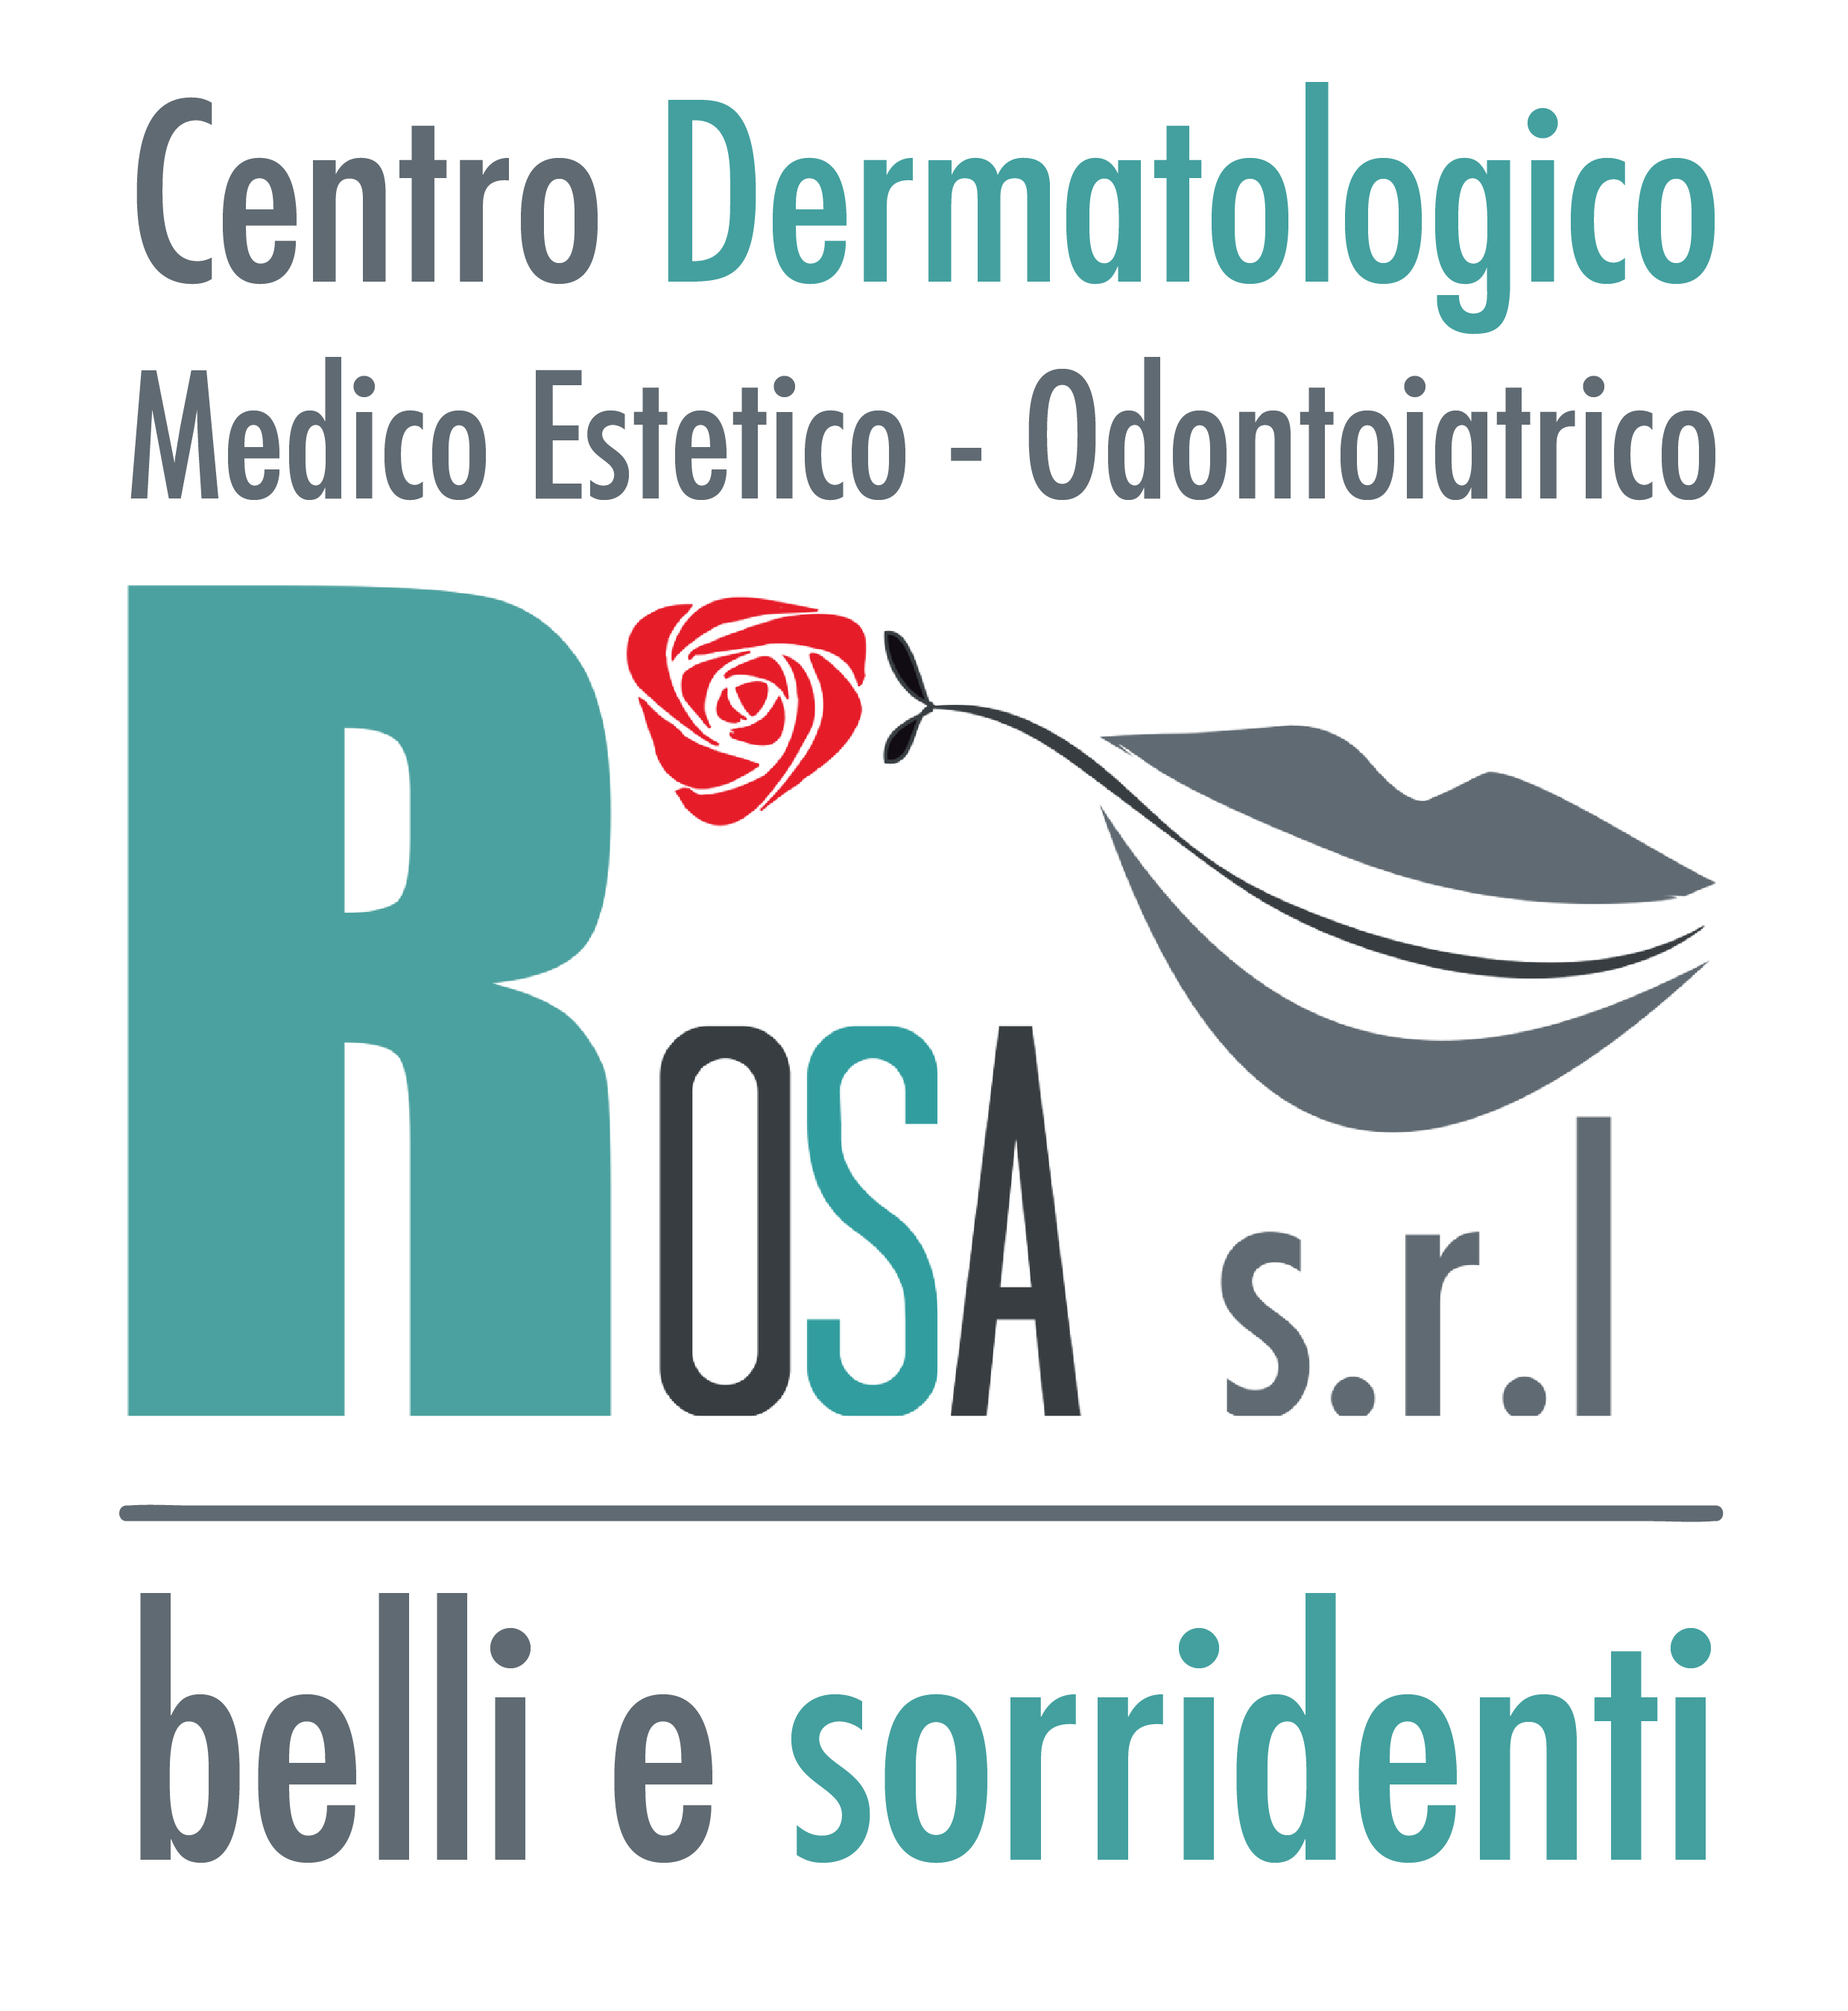 Rosa s.r.l -- Grafica, sviluppo sito web e  marketing